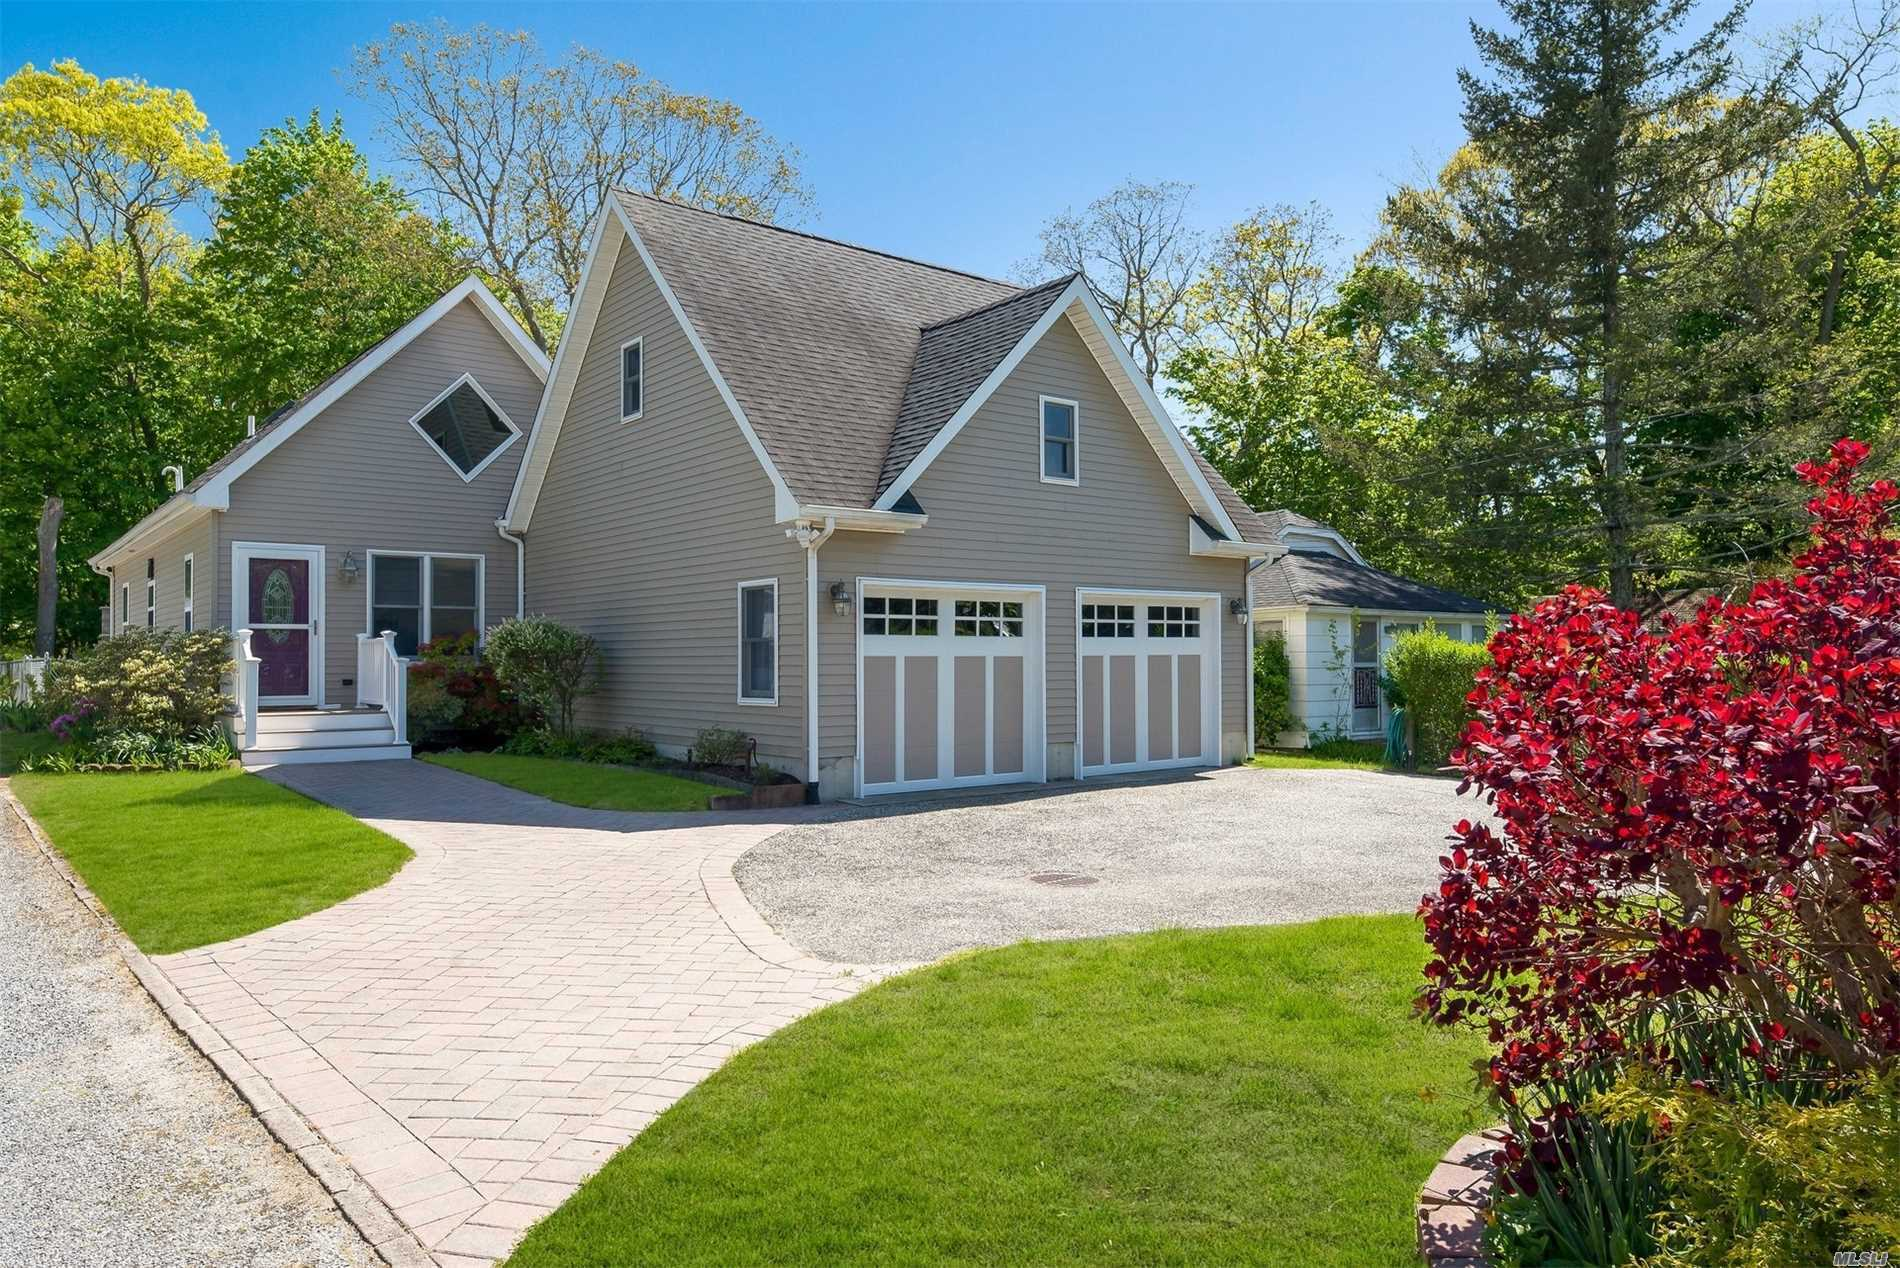 Delightful Newly Renovated North Fork Charmer Walking Distance To Peconic Bay Beach, Marina & Town, Bright Open Concept Living W Radiant Heat & 3rd Bdrm Option, Impressive Built-In Outdoor Kitchen/BBQ/Fireplace For Easy Entertaining In Serene Backyard Surroundings. This Pristine Move In Ready Home Also Includes A New Spacious Two Car Garage W Full Storage Loft Above. Perfect Area For Kayaking And Cycling Or Just A Quiet Stroll Around The Block. Come See This Precious Gem Before It's Gone!